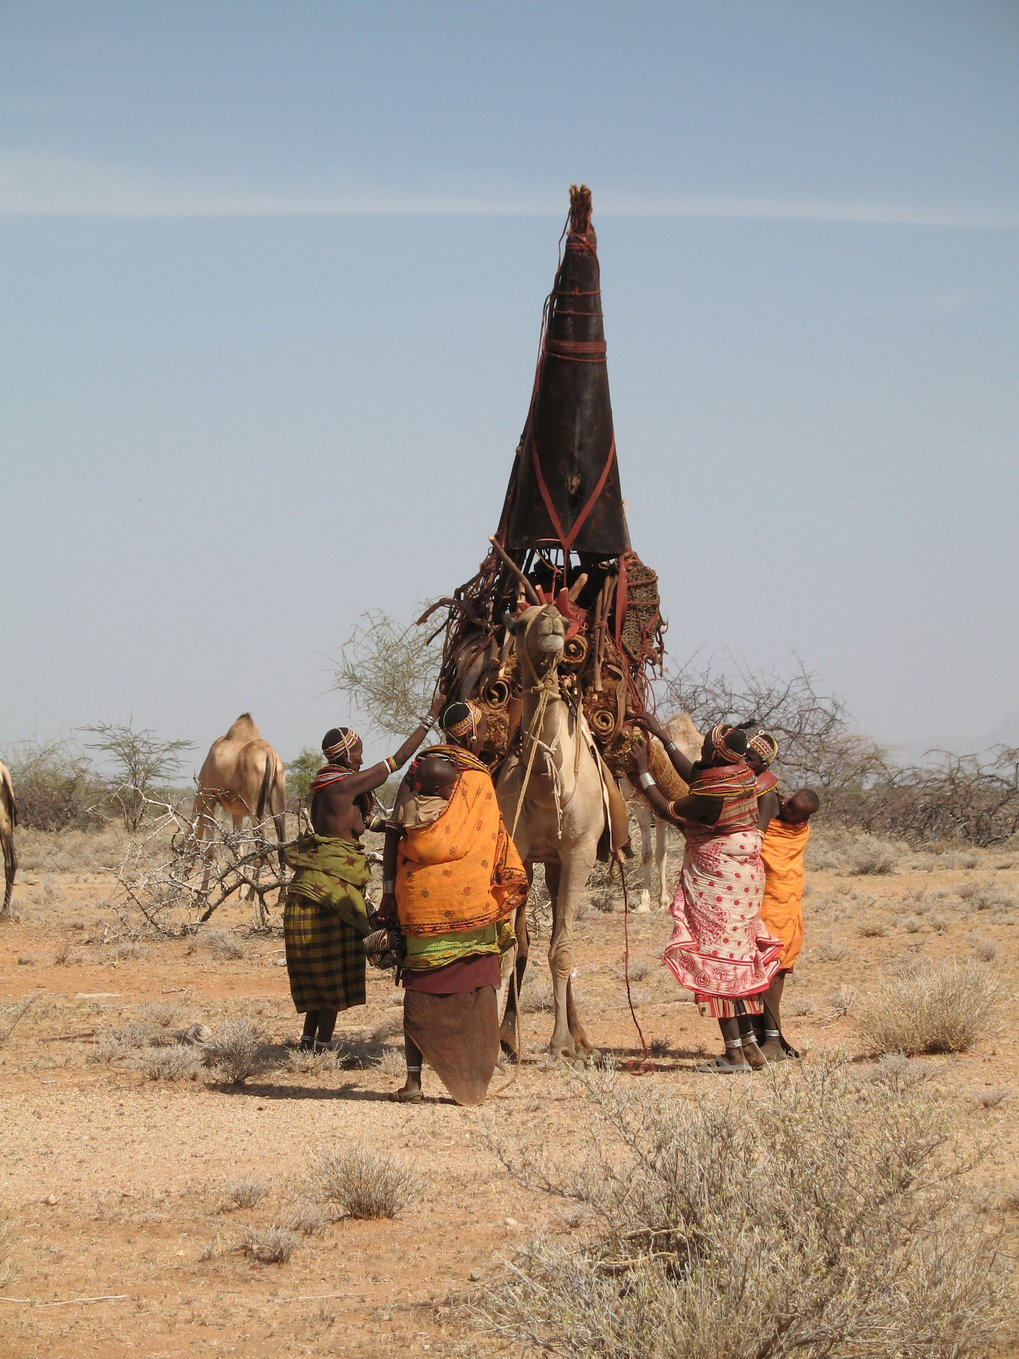 Loading the camels, Rendille, Kenya, 2009